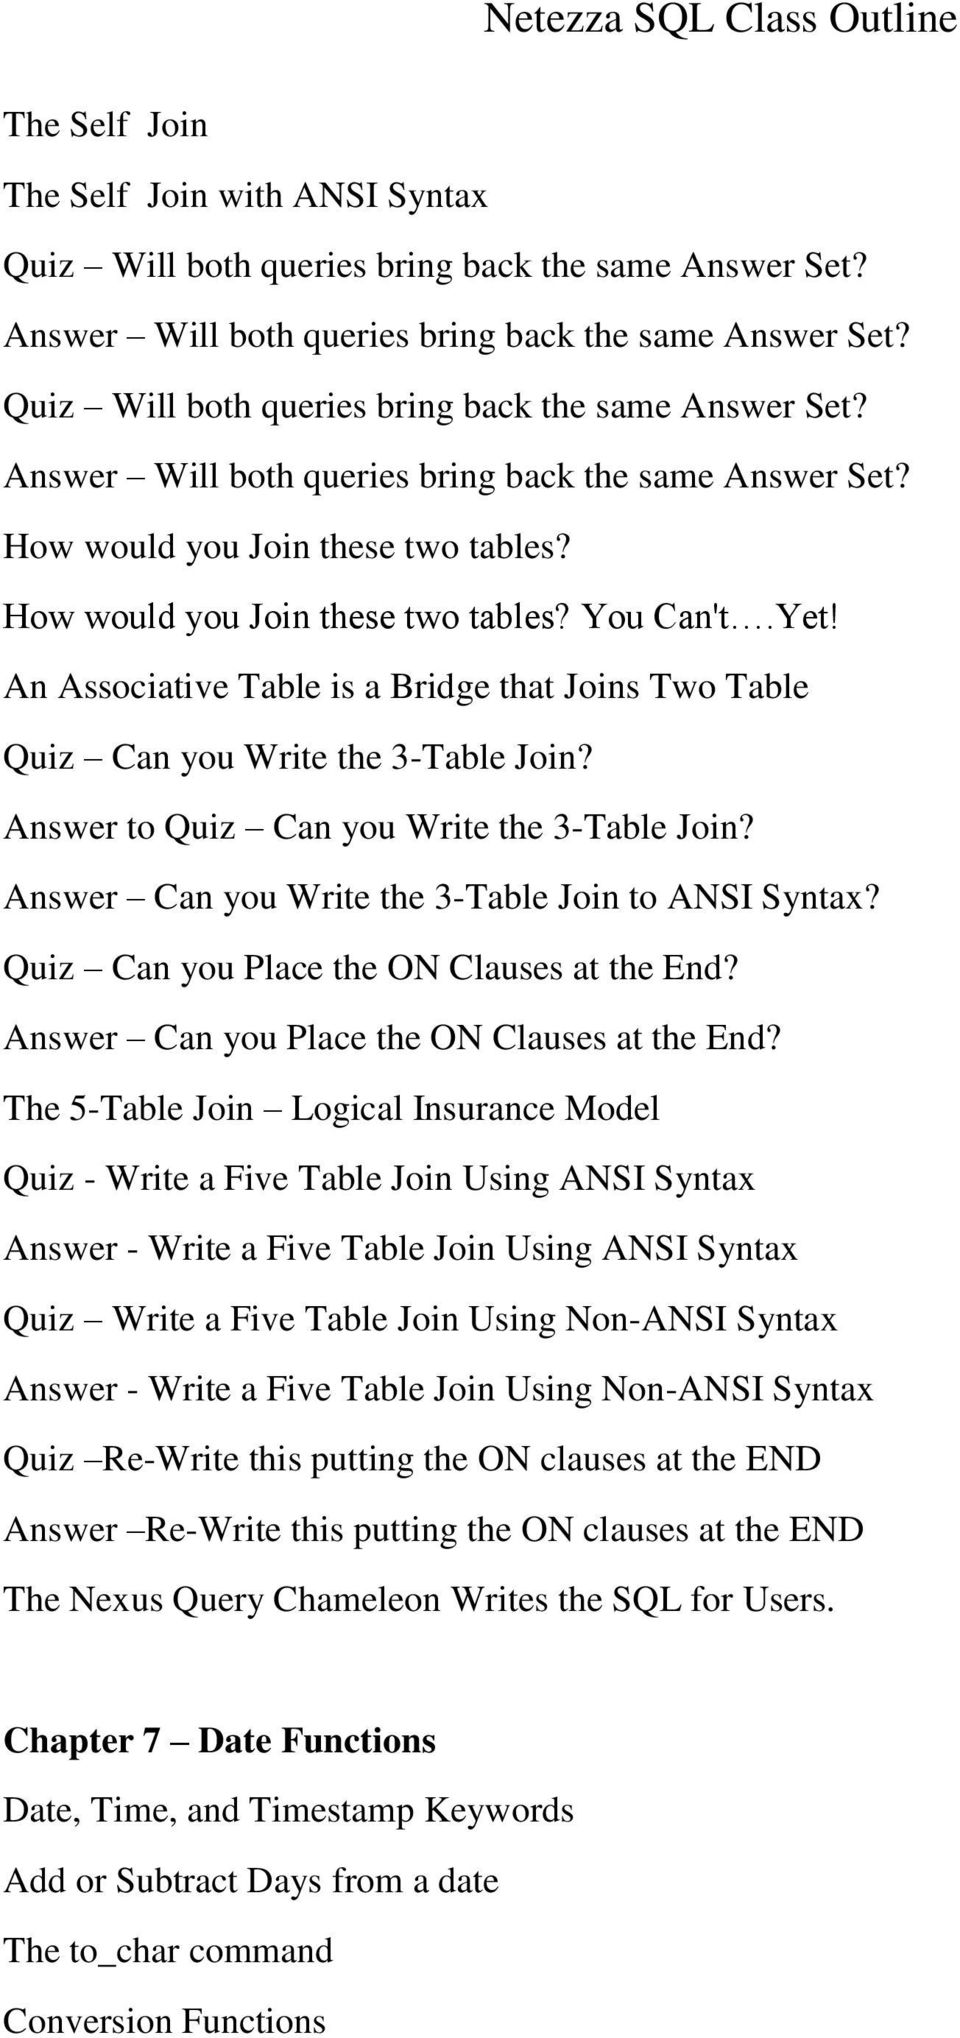 An Associative Table is a Bridge that Joins Two Table Quiz Can you Write the 3-Table Join? Answer to Quiz Can you Write the 3-Table Join? Answer Can you Write the 3-Table Join to ANSI Syntax?